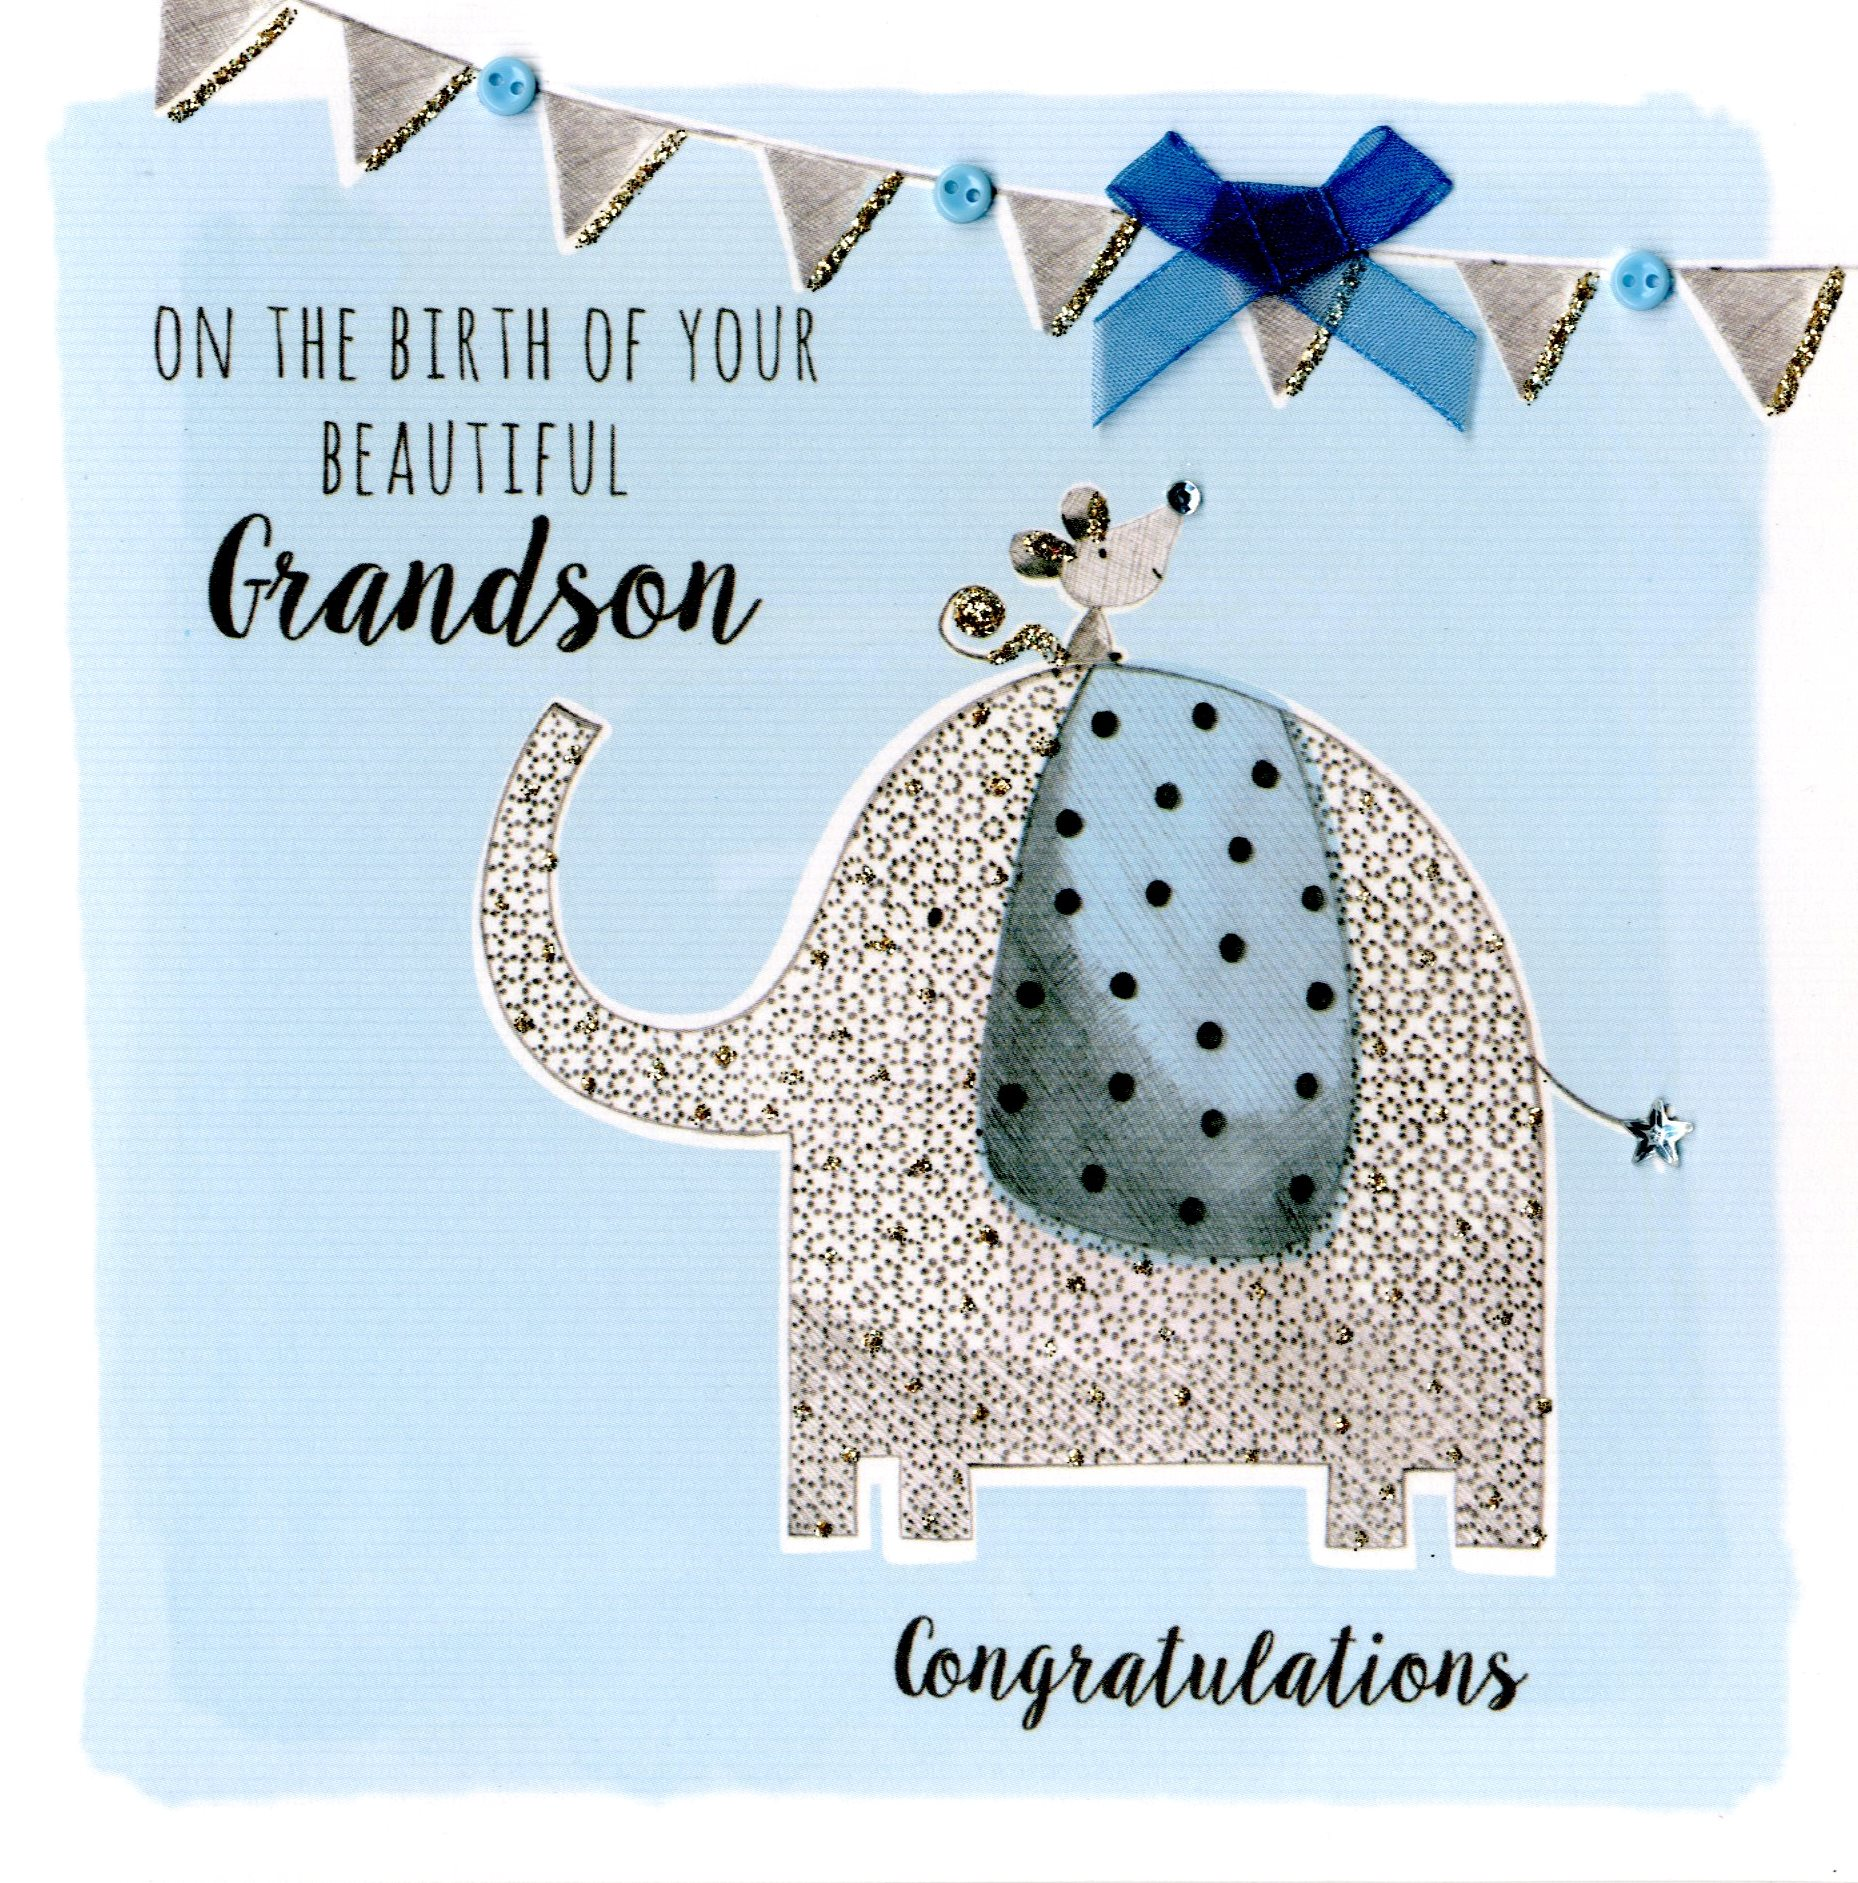 New baby grandson embellished greeting card cards love kates new baby grandson embellished greeting card kristyandbryce Image collections